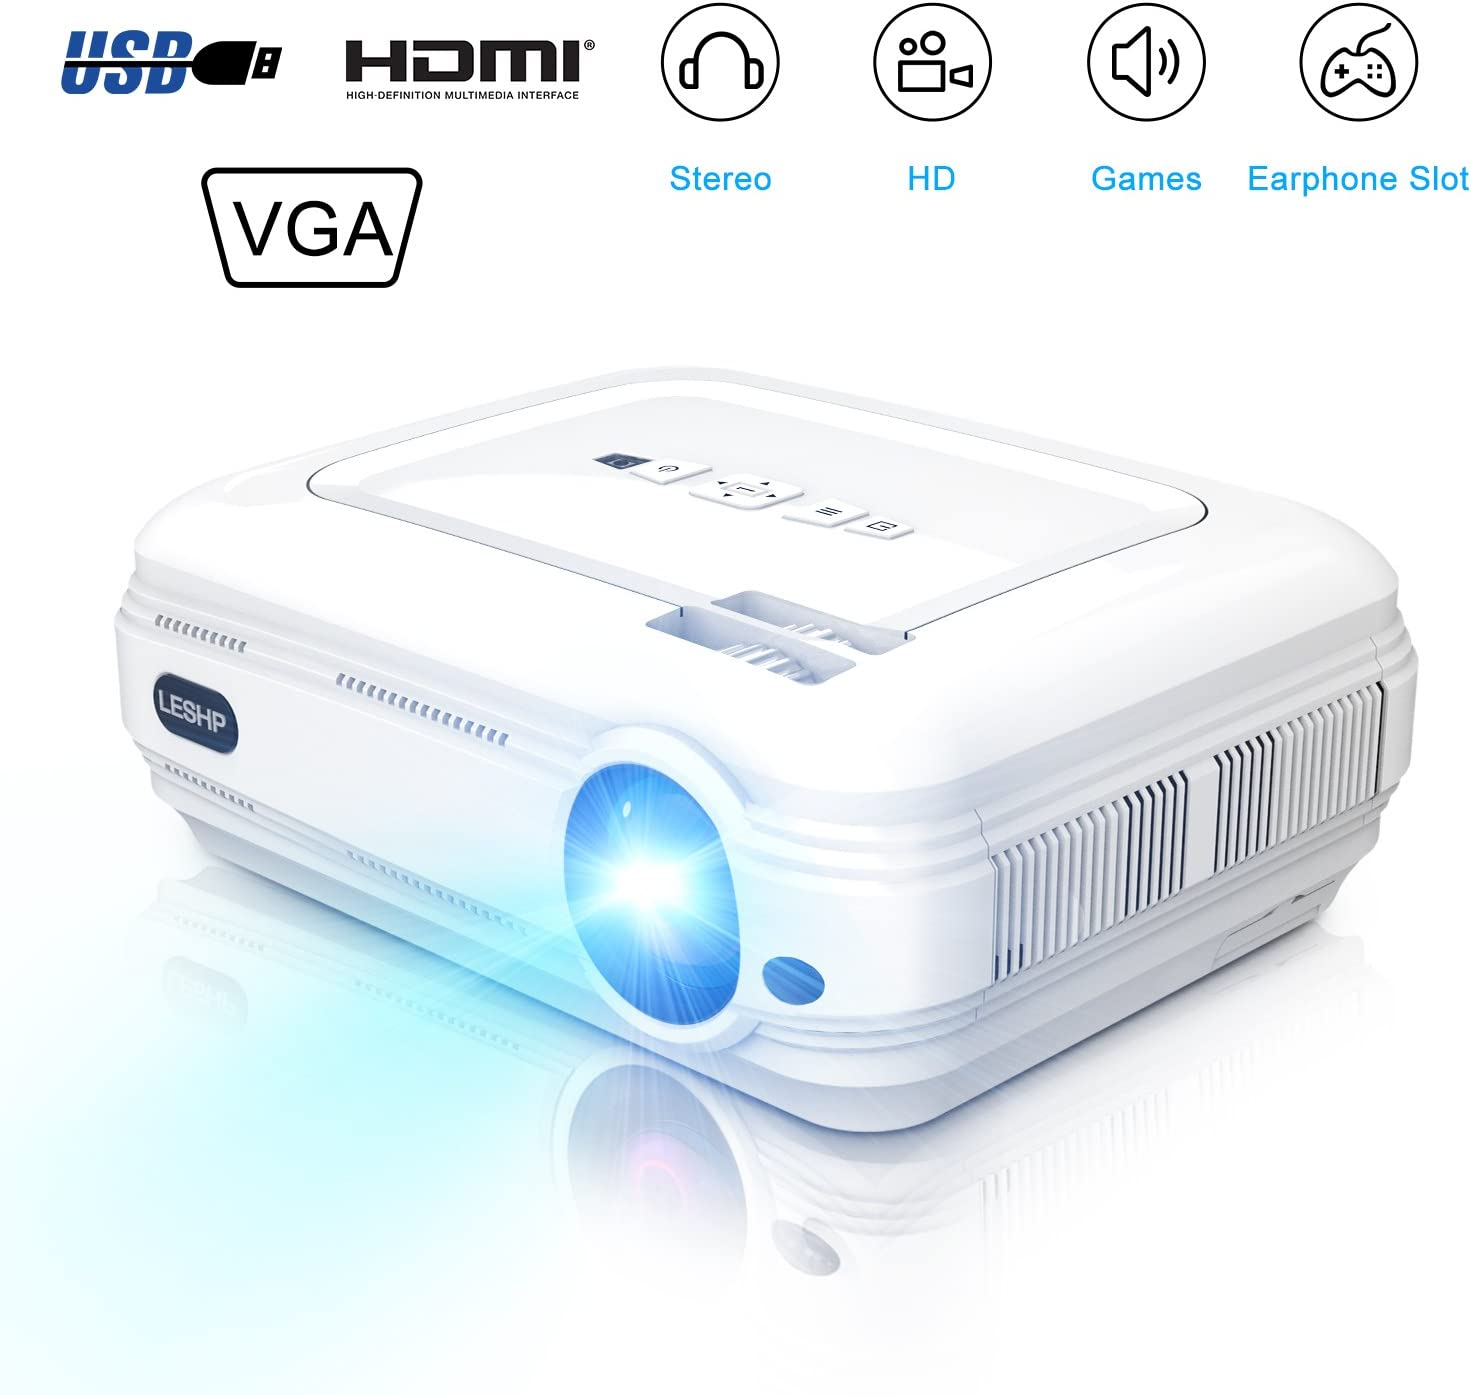 Mini 720P Projector,LCD LED Video Projector 3200 Lumens Support 1080P HDMI USB for Home Cinema TV Laptop Game iPhone Andriod Smartphone